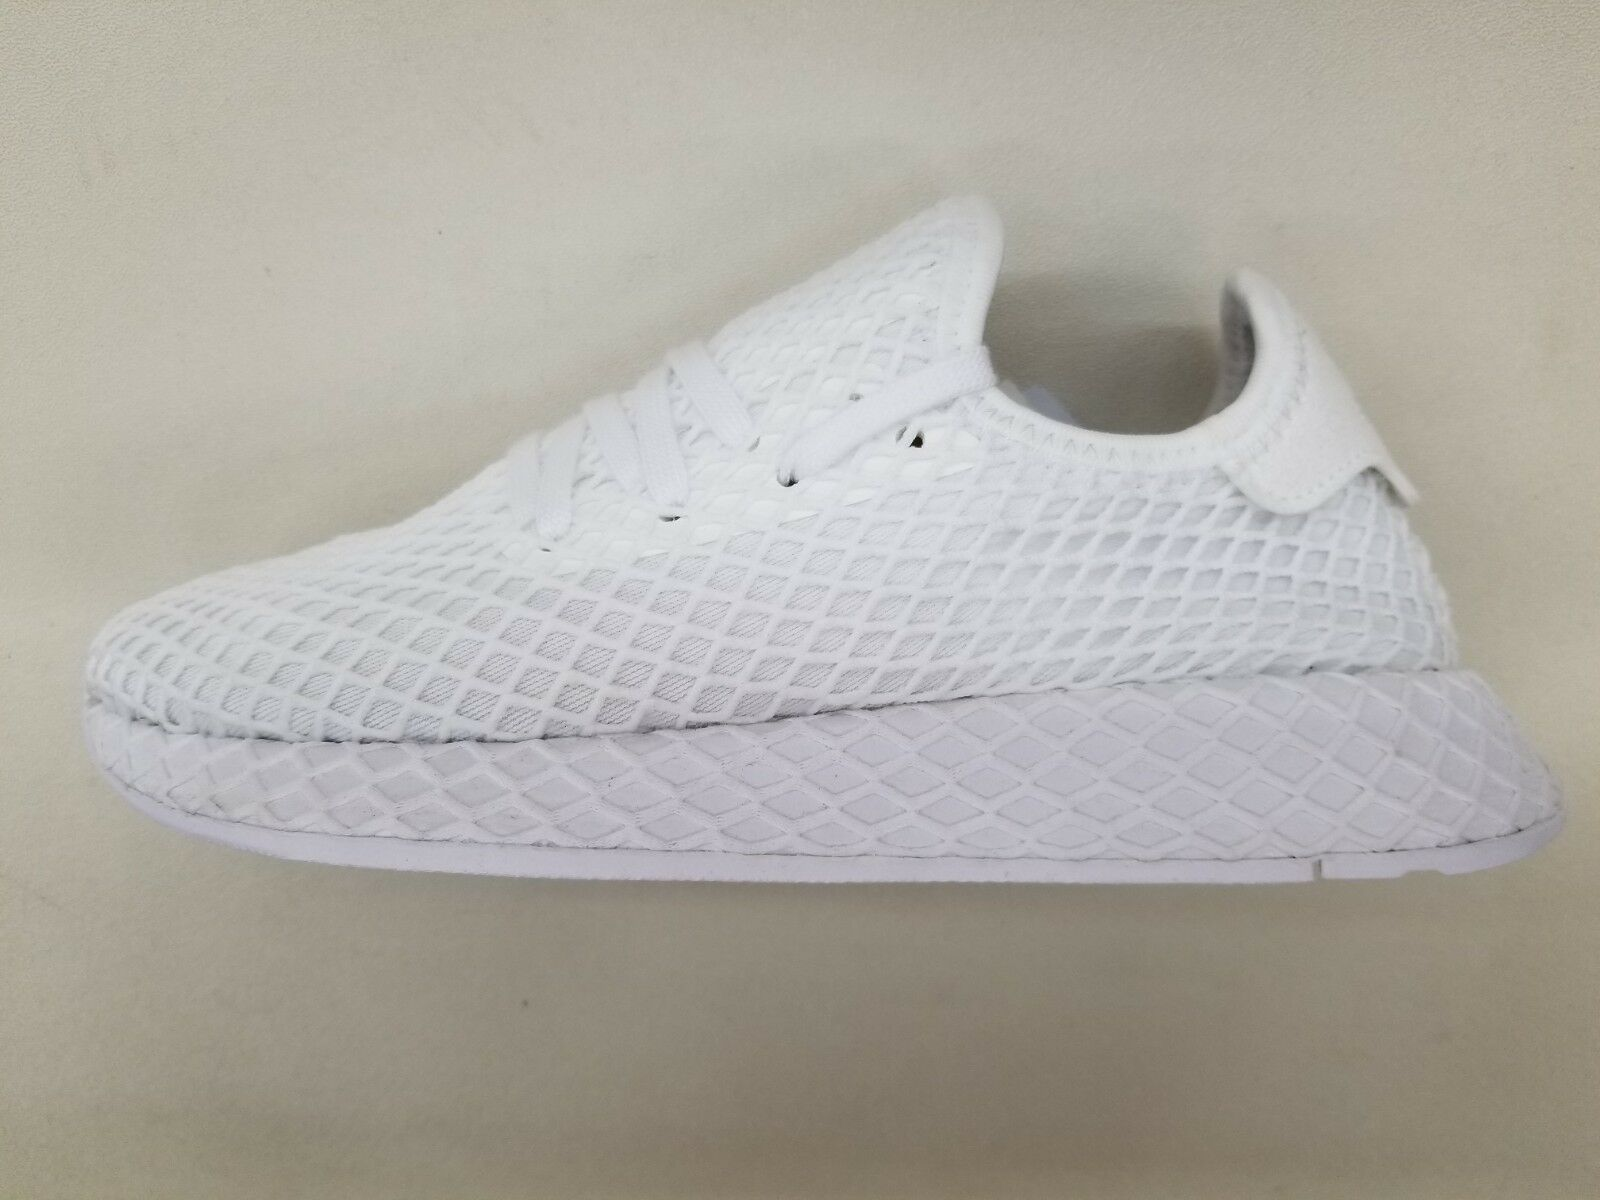 ADIDAS ORIGINALS DEERUPT RUNNER FOOTWEAR WHITE BLACK MENS SIZE SNEAKERS CQ2625